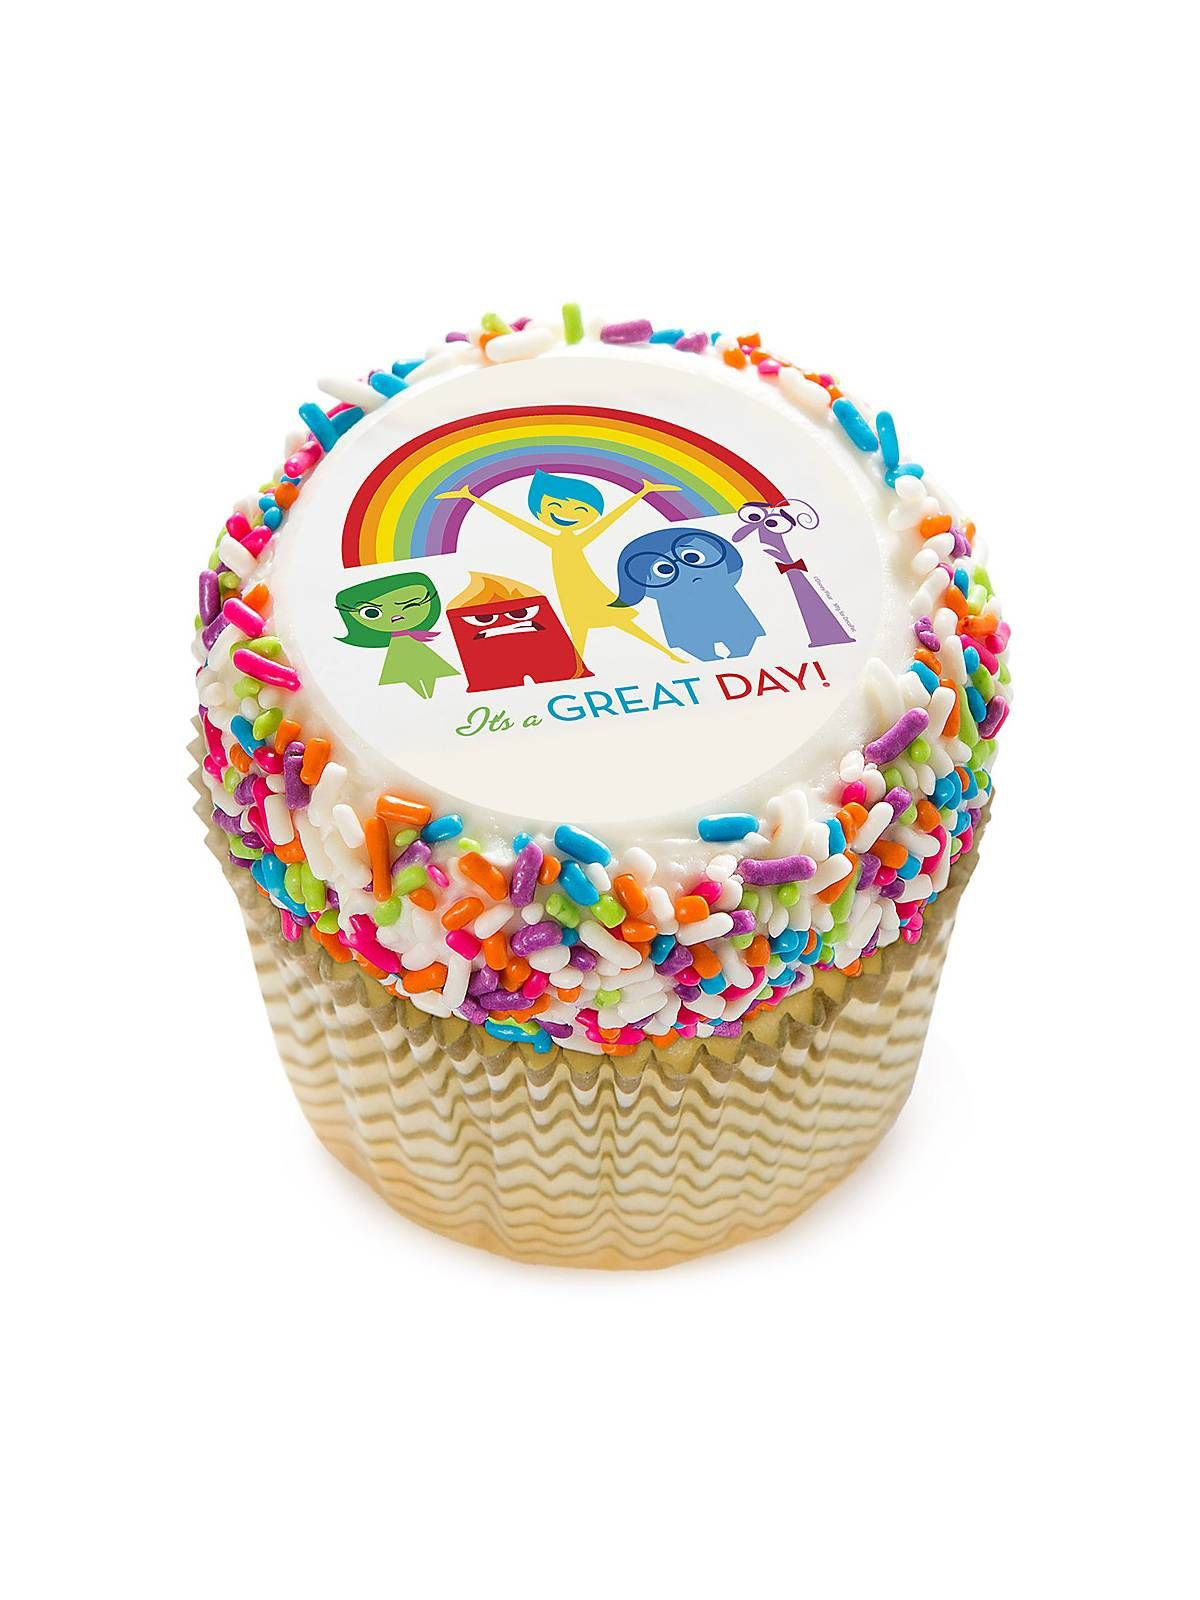 Bargain Party Decorations Inside Out 2 Edible Cupcake Topper 12 Images Activities